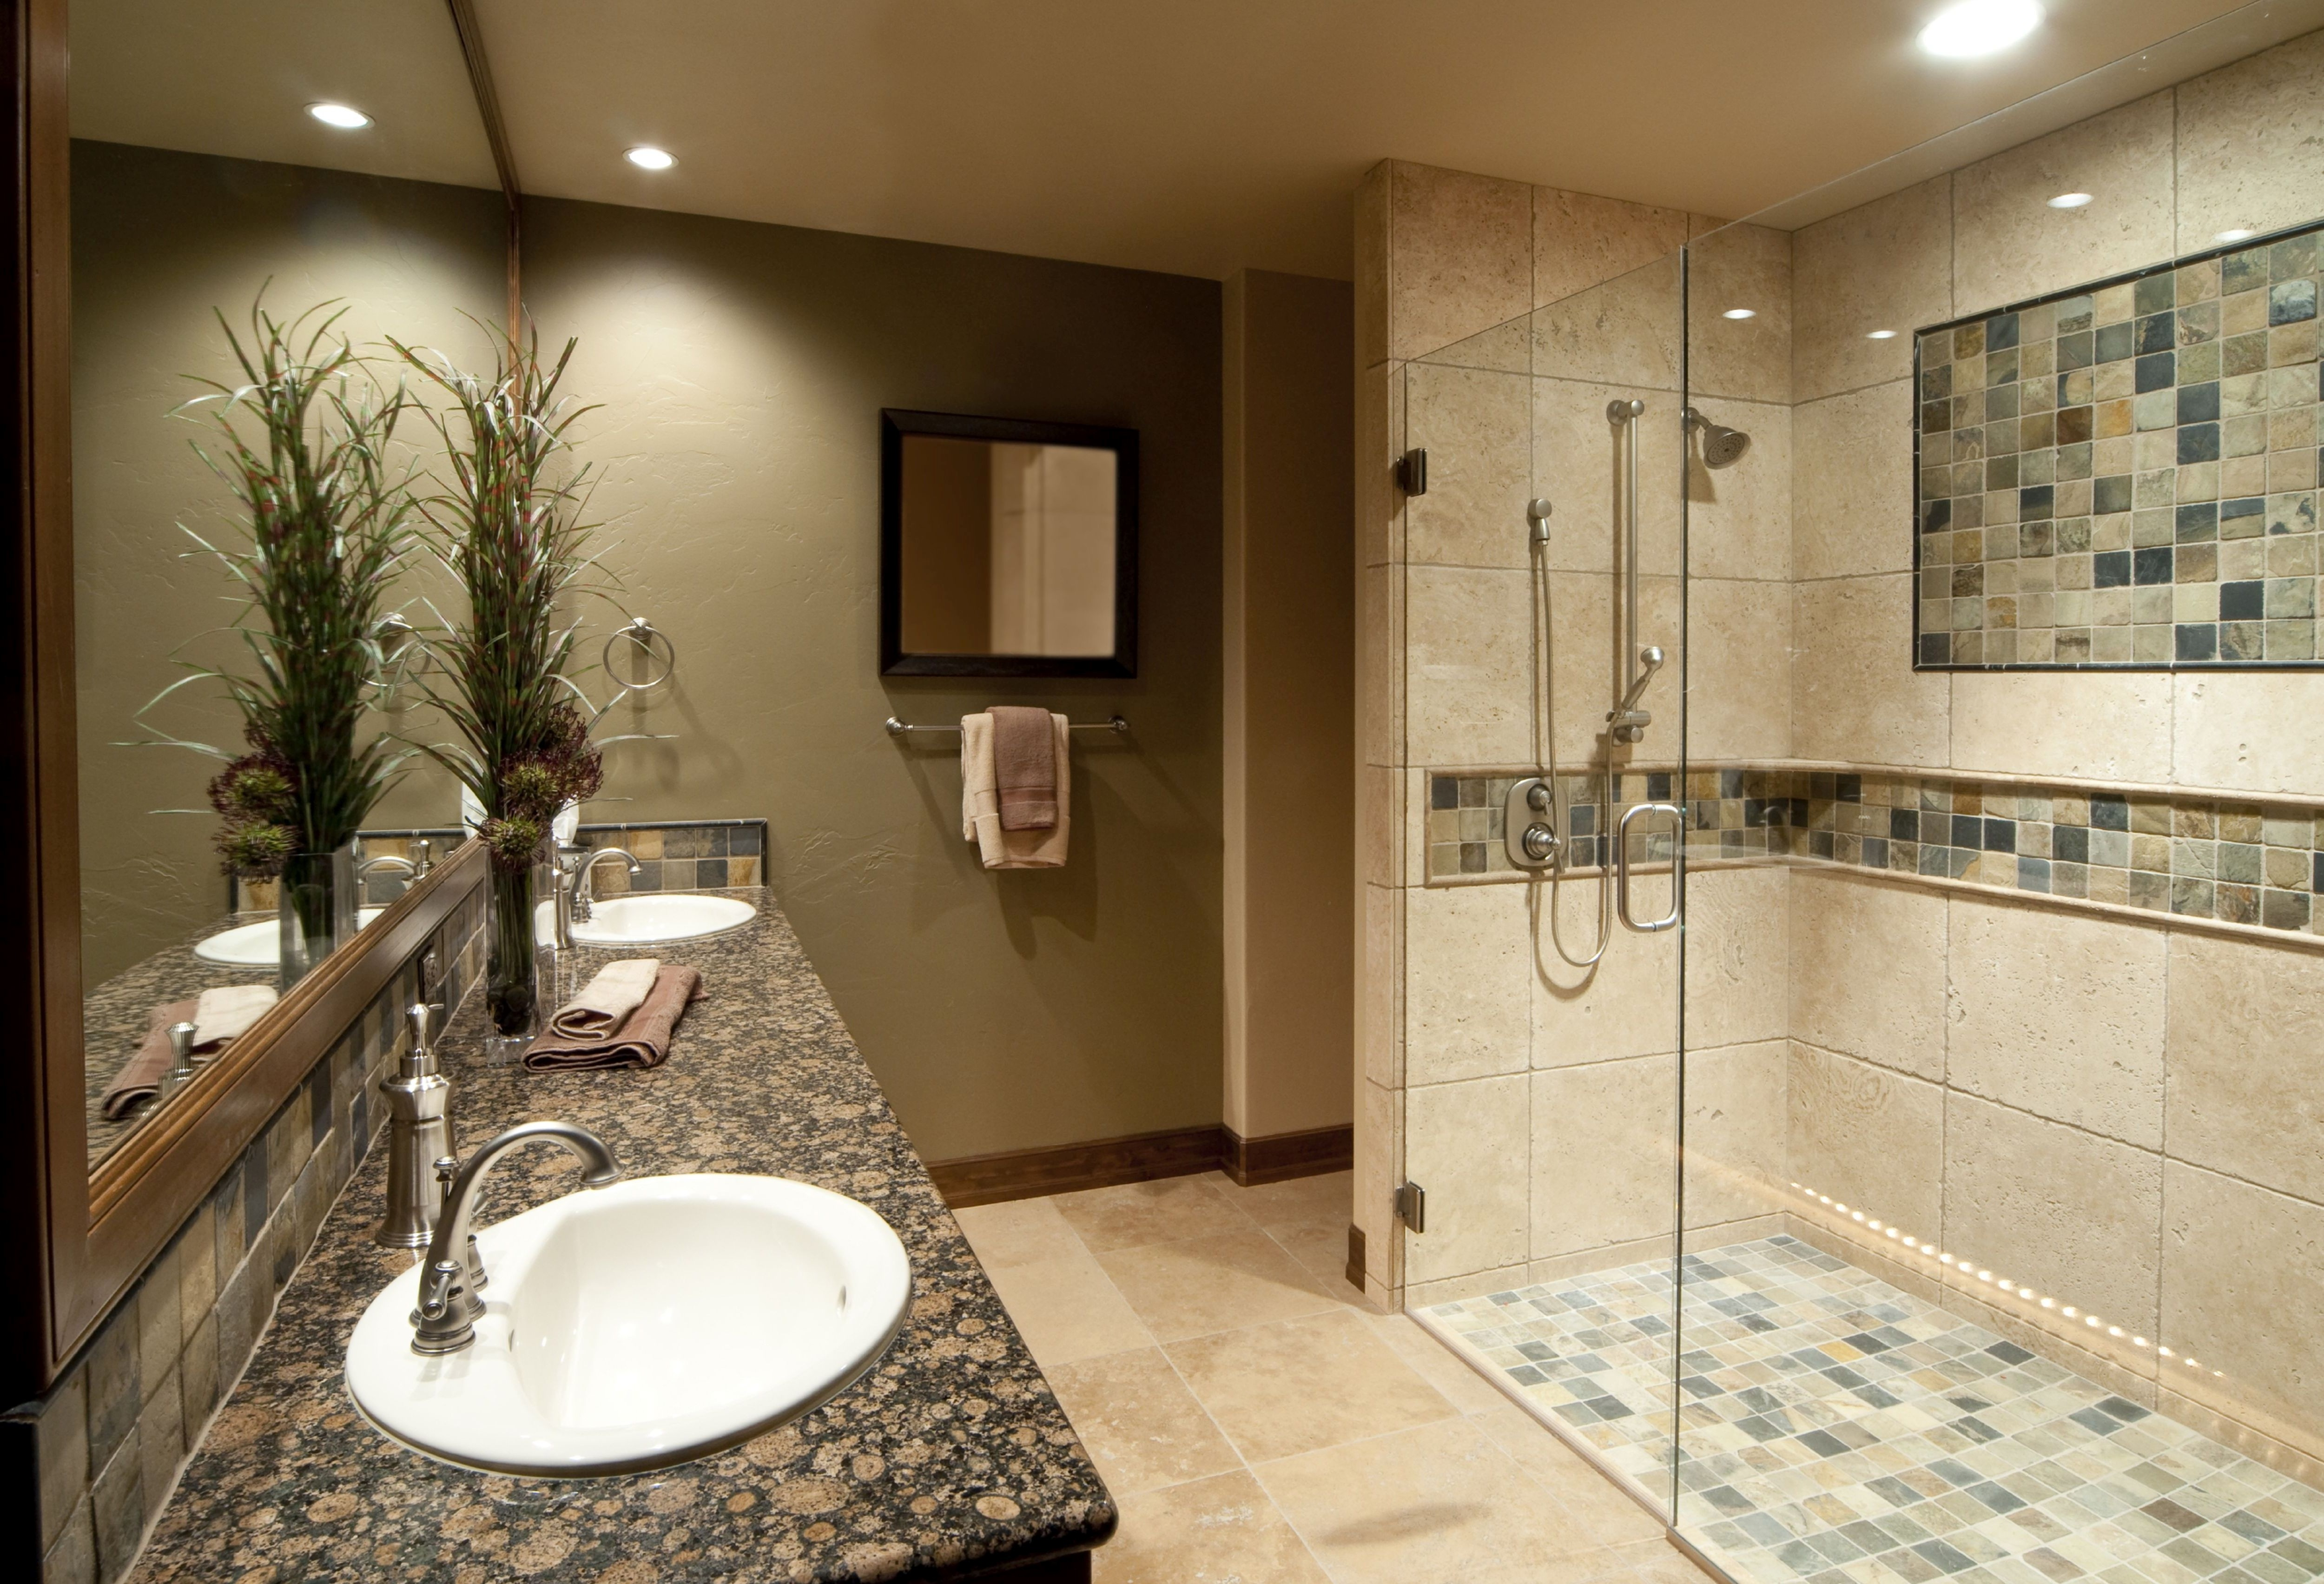 How Much Does It Cost to Remodel A Bathroom Best Renovating Bathroom Cost Gseokbinder Photograph